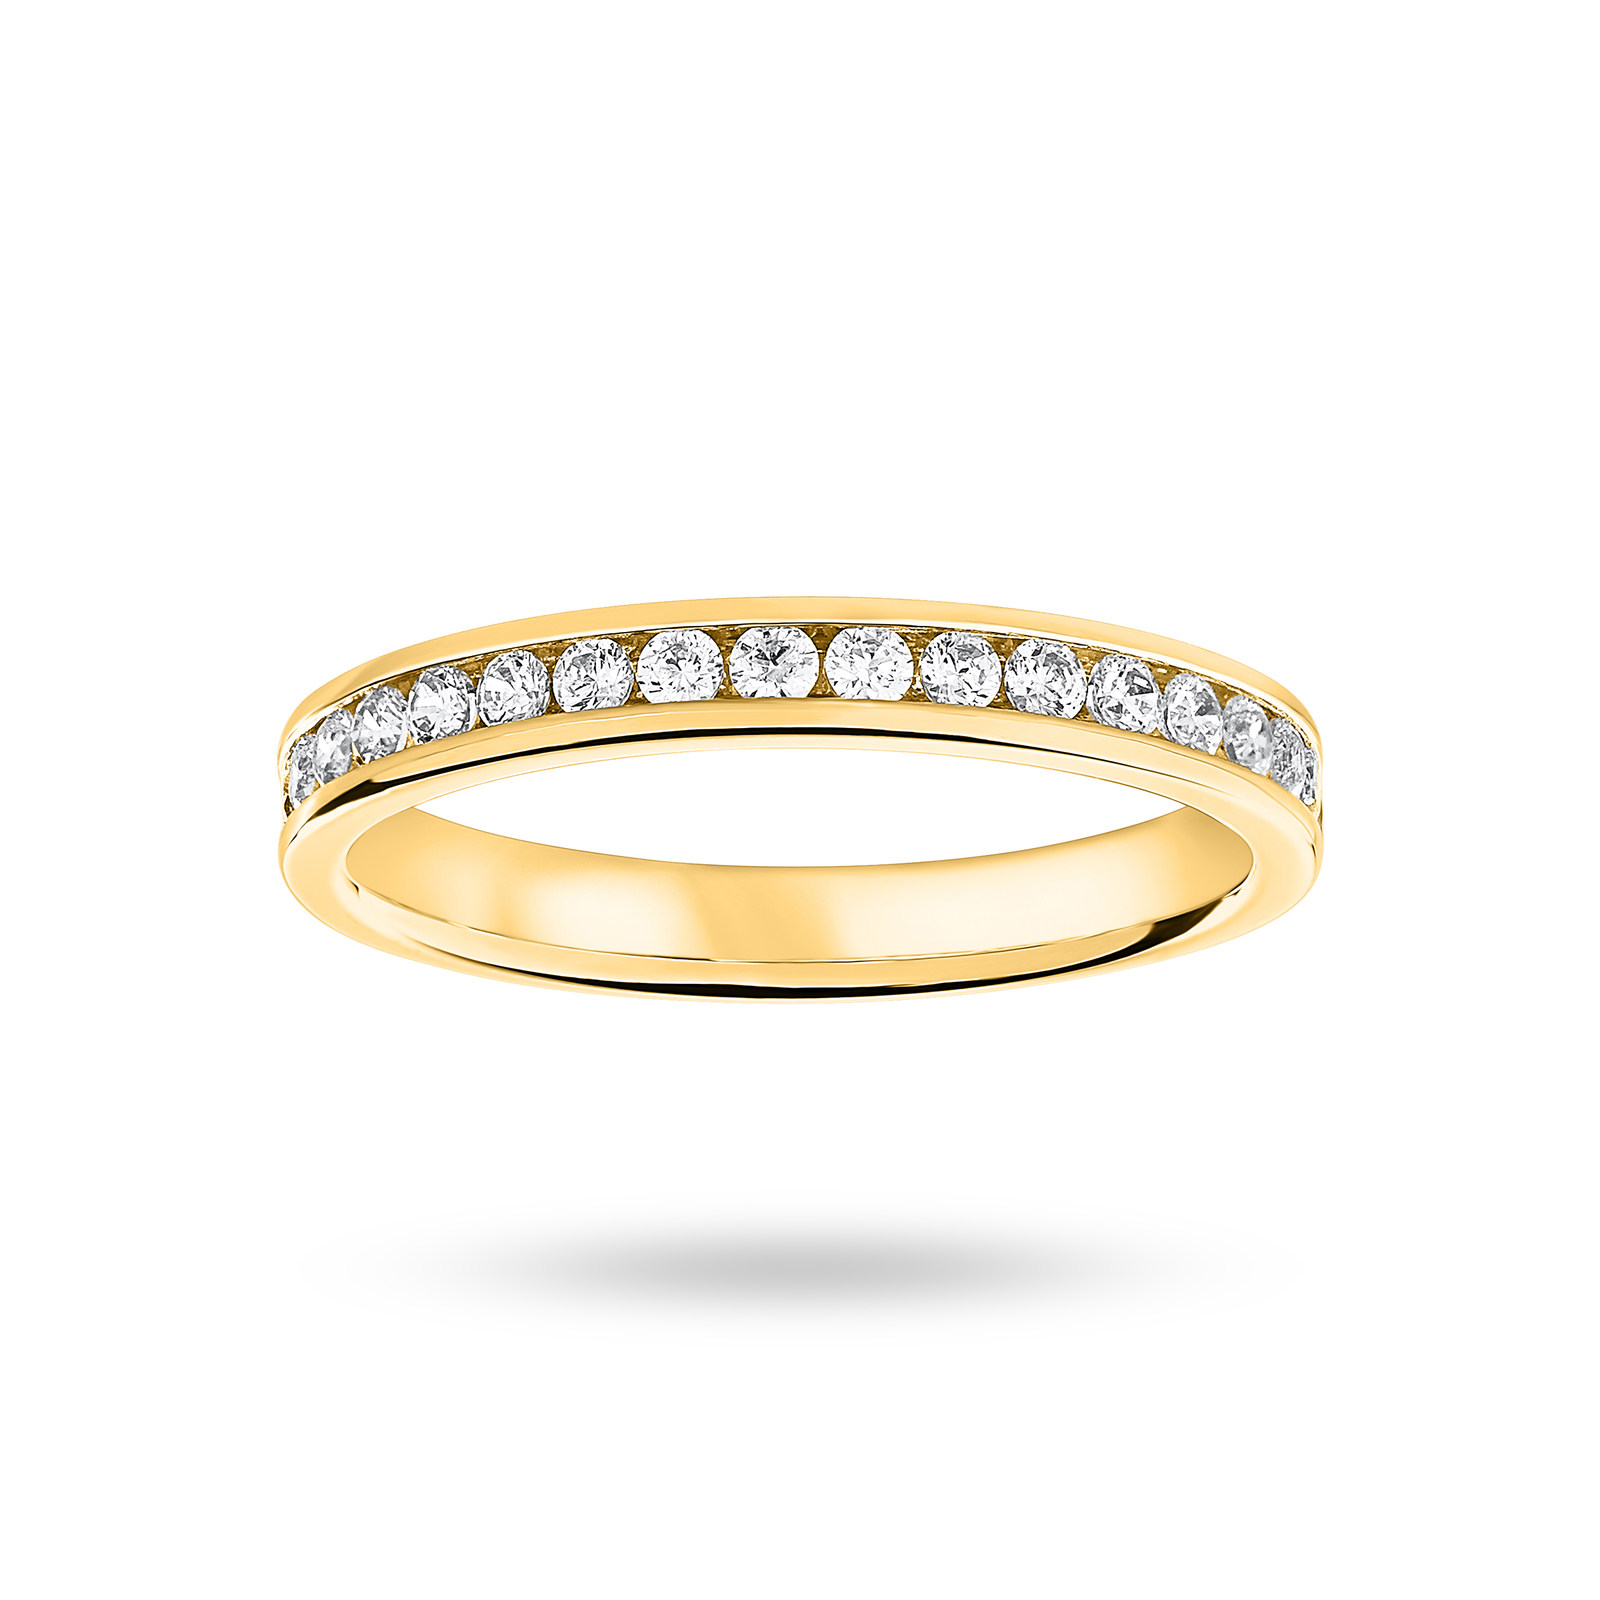 18 Carat Yellow Gold 0.33 Carat Brilliant Cut Half Eternity Ring